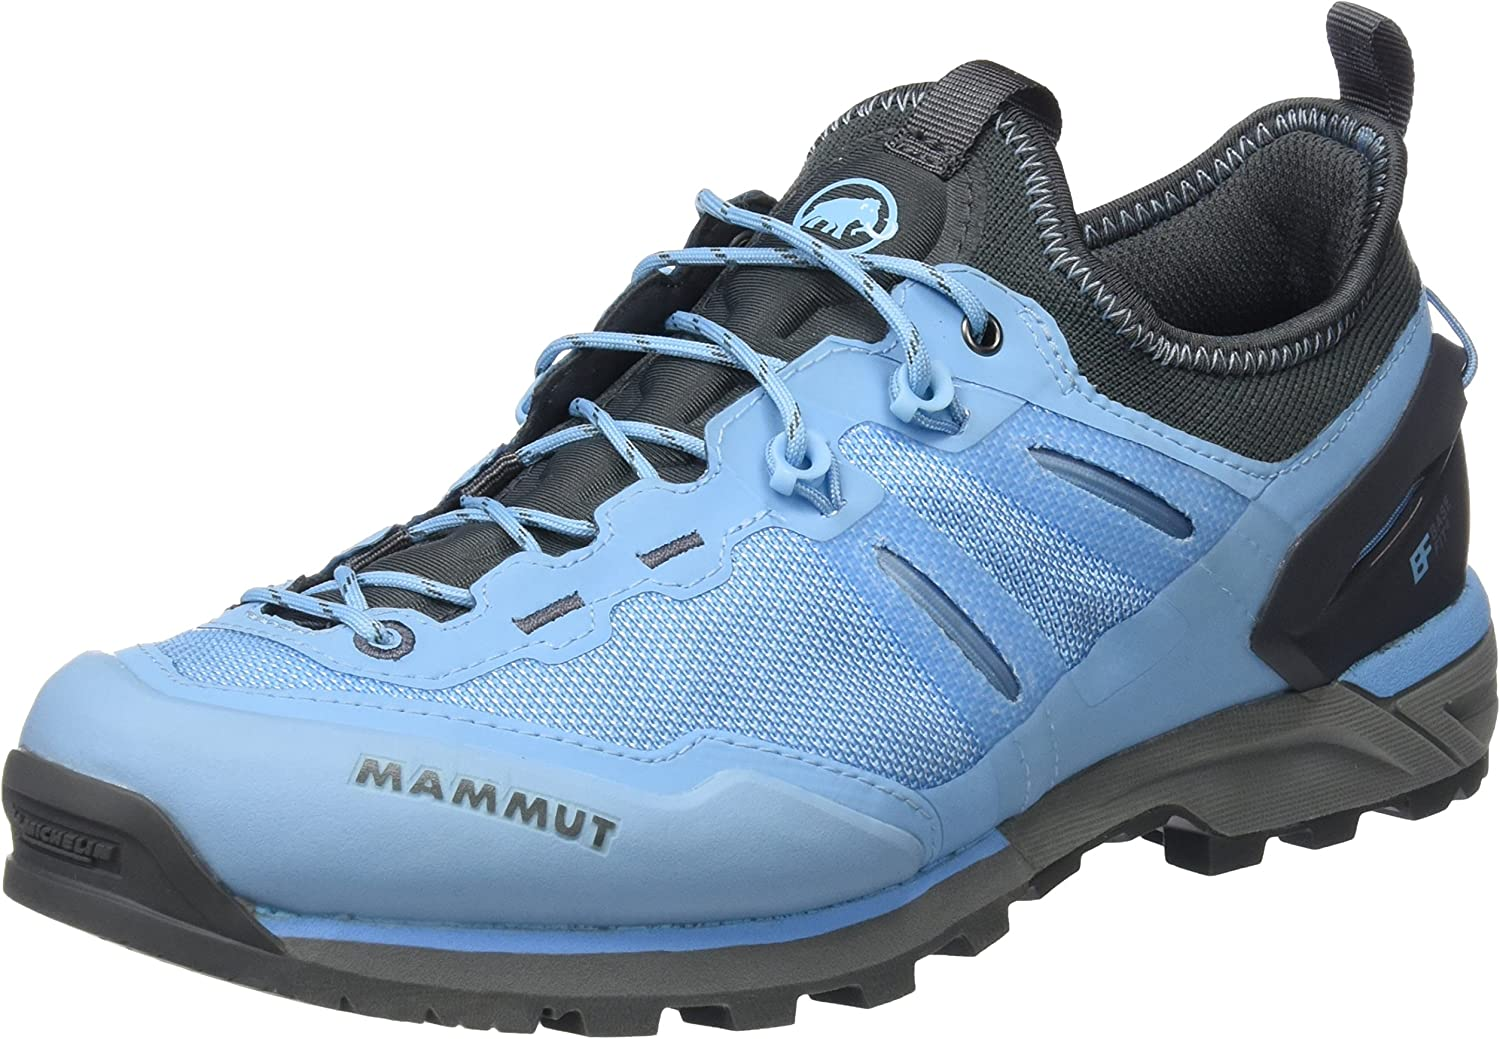 Alnasca Knit Low Rise Hiking Boots